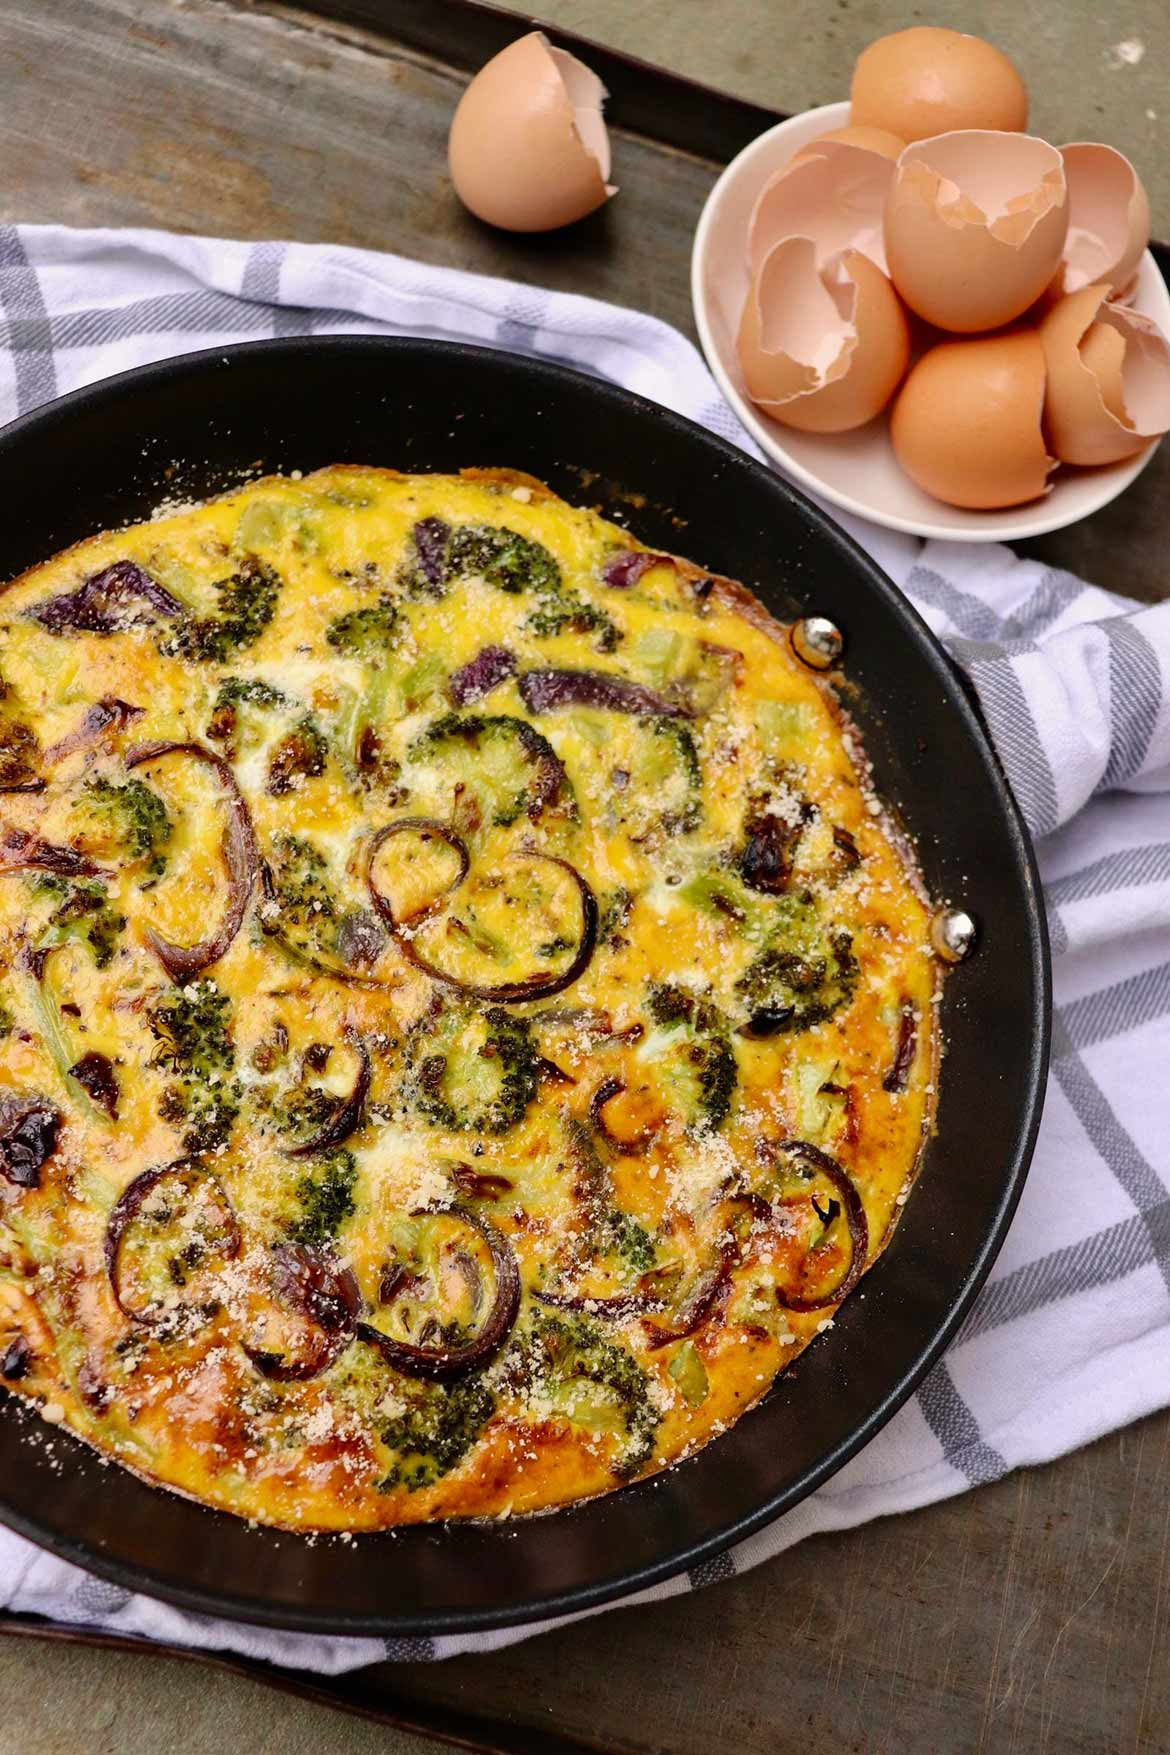 Slow-Baked Roasted Broccoli Frittata -- Creamy eggs meet caramelized veggies for a flavor-packed meatless meal that satisfies any time of day!